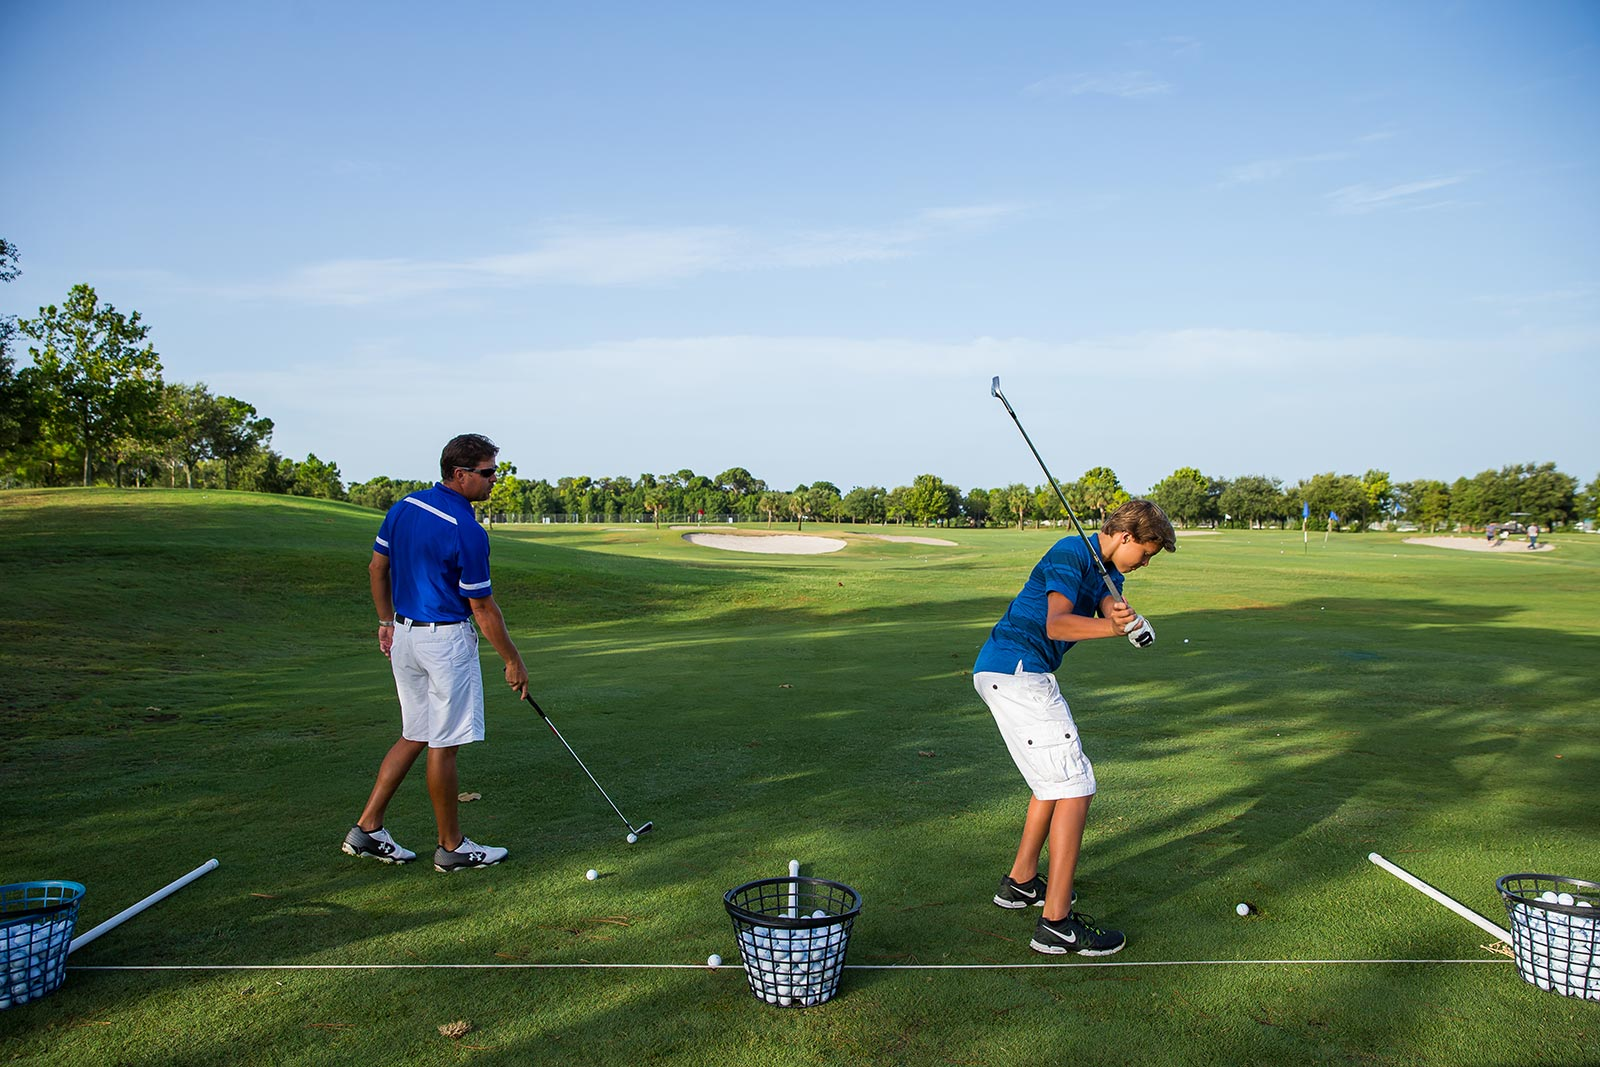 IMG Academy Golf Course